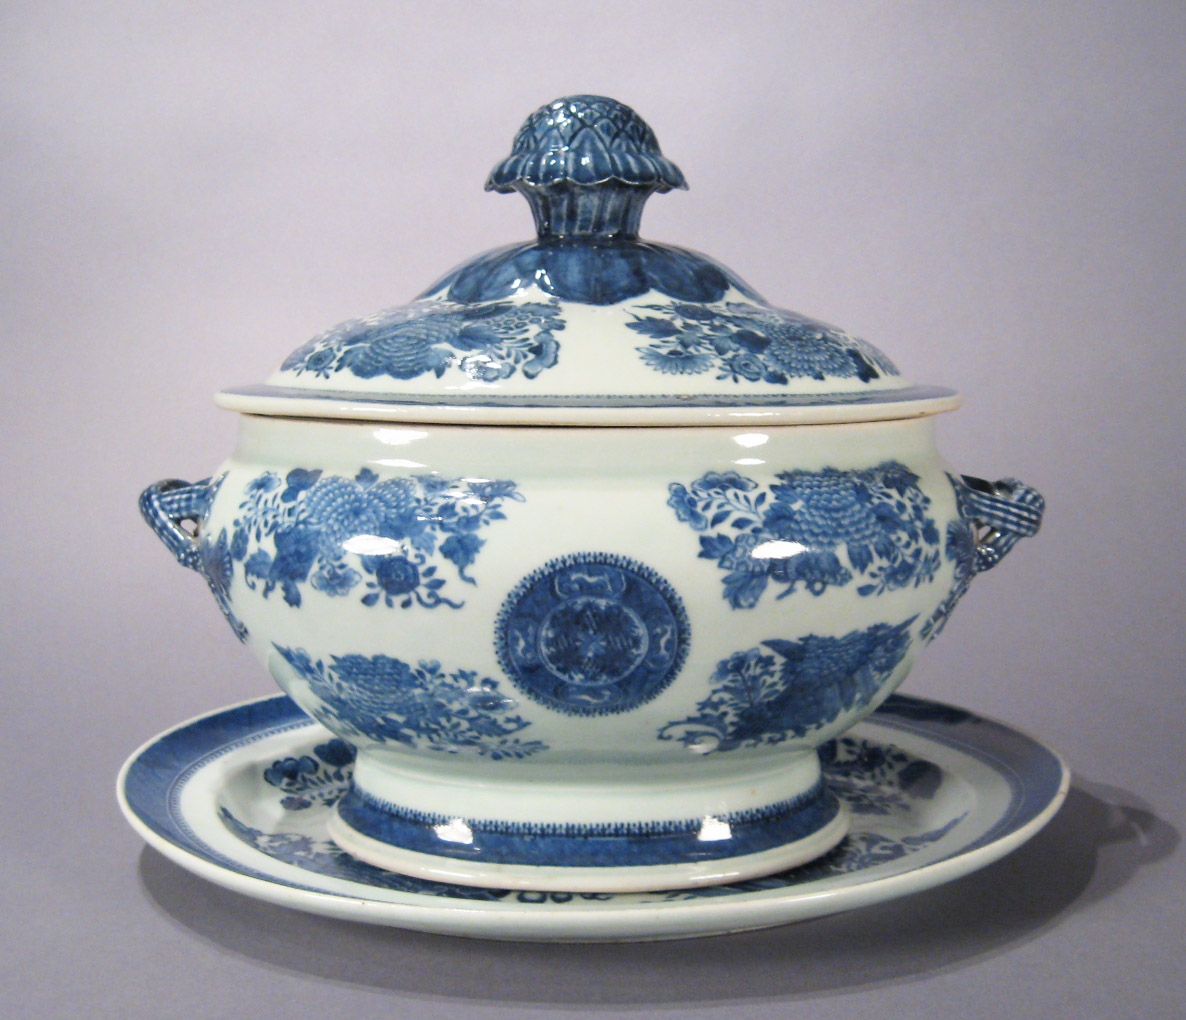 Home Decorative Lighting Chinese Export Porcelain Blue And White Soup Tureen C 1810